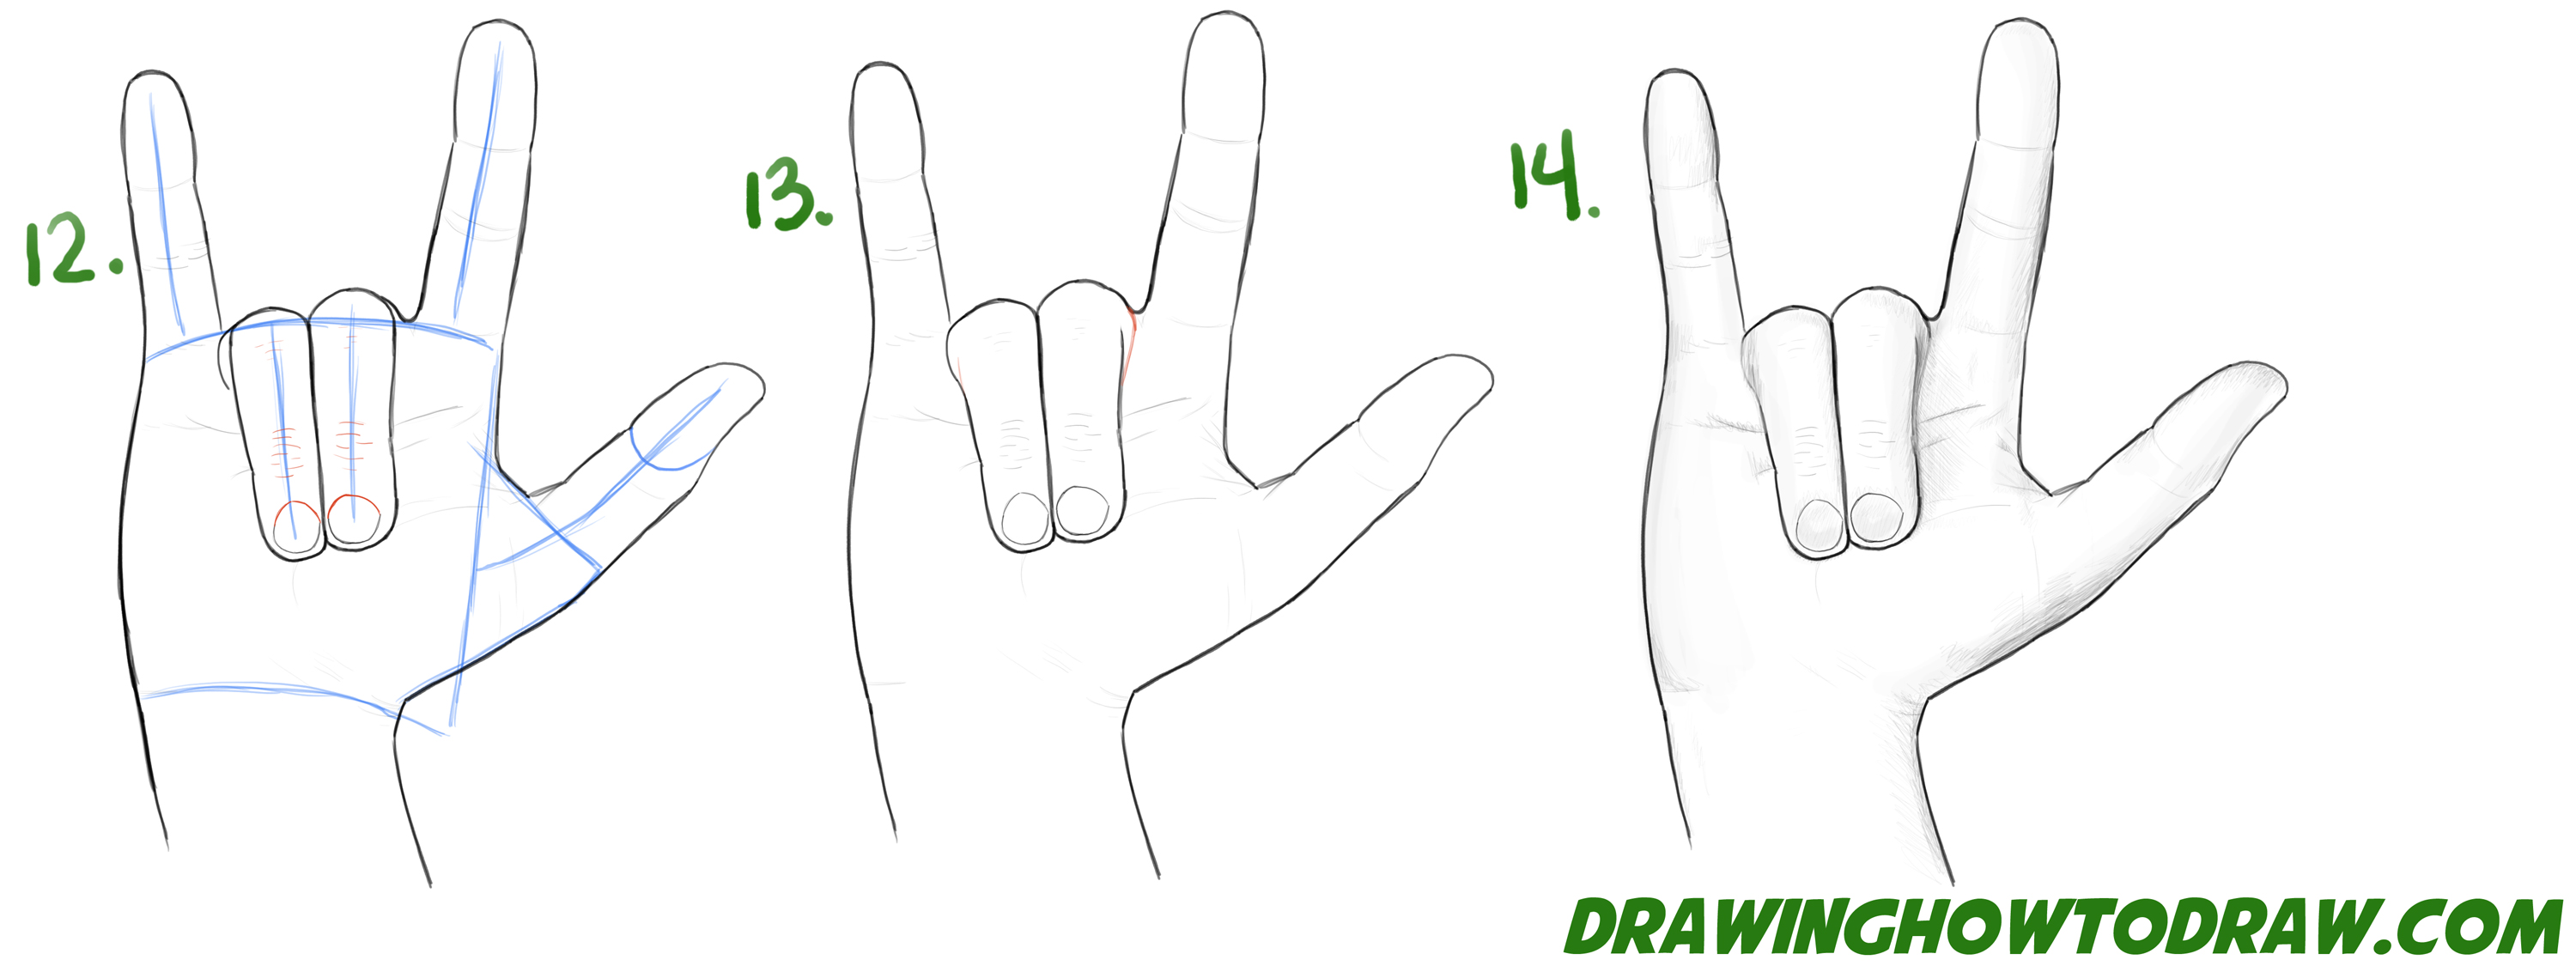 How To Draw Love Hands Sign Language For Love Easy Step